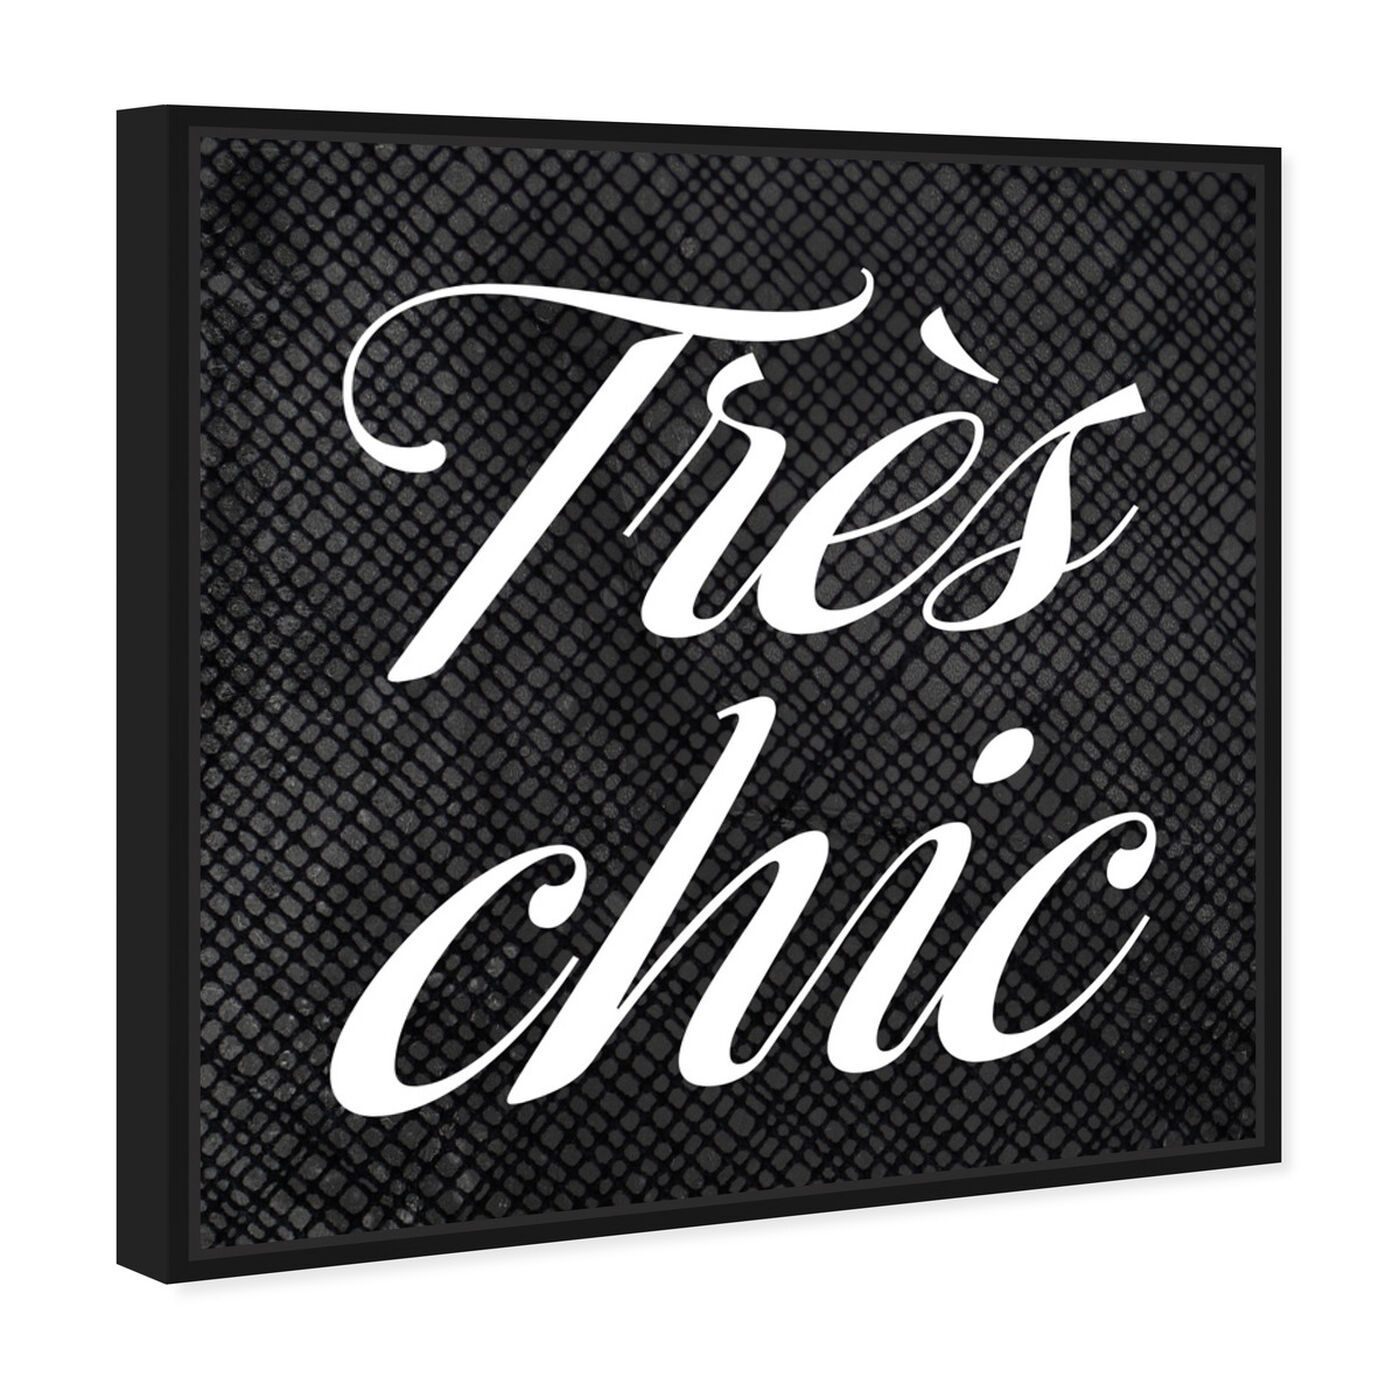 Angled view of Tres Chic featuring typography and quotes and beauty quotes and sayings art.